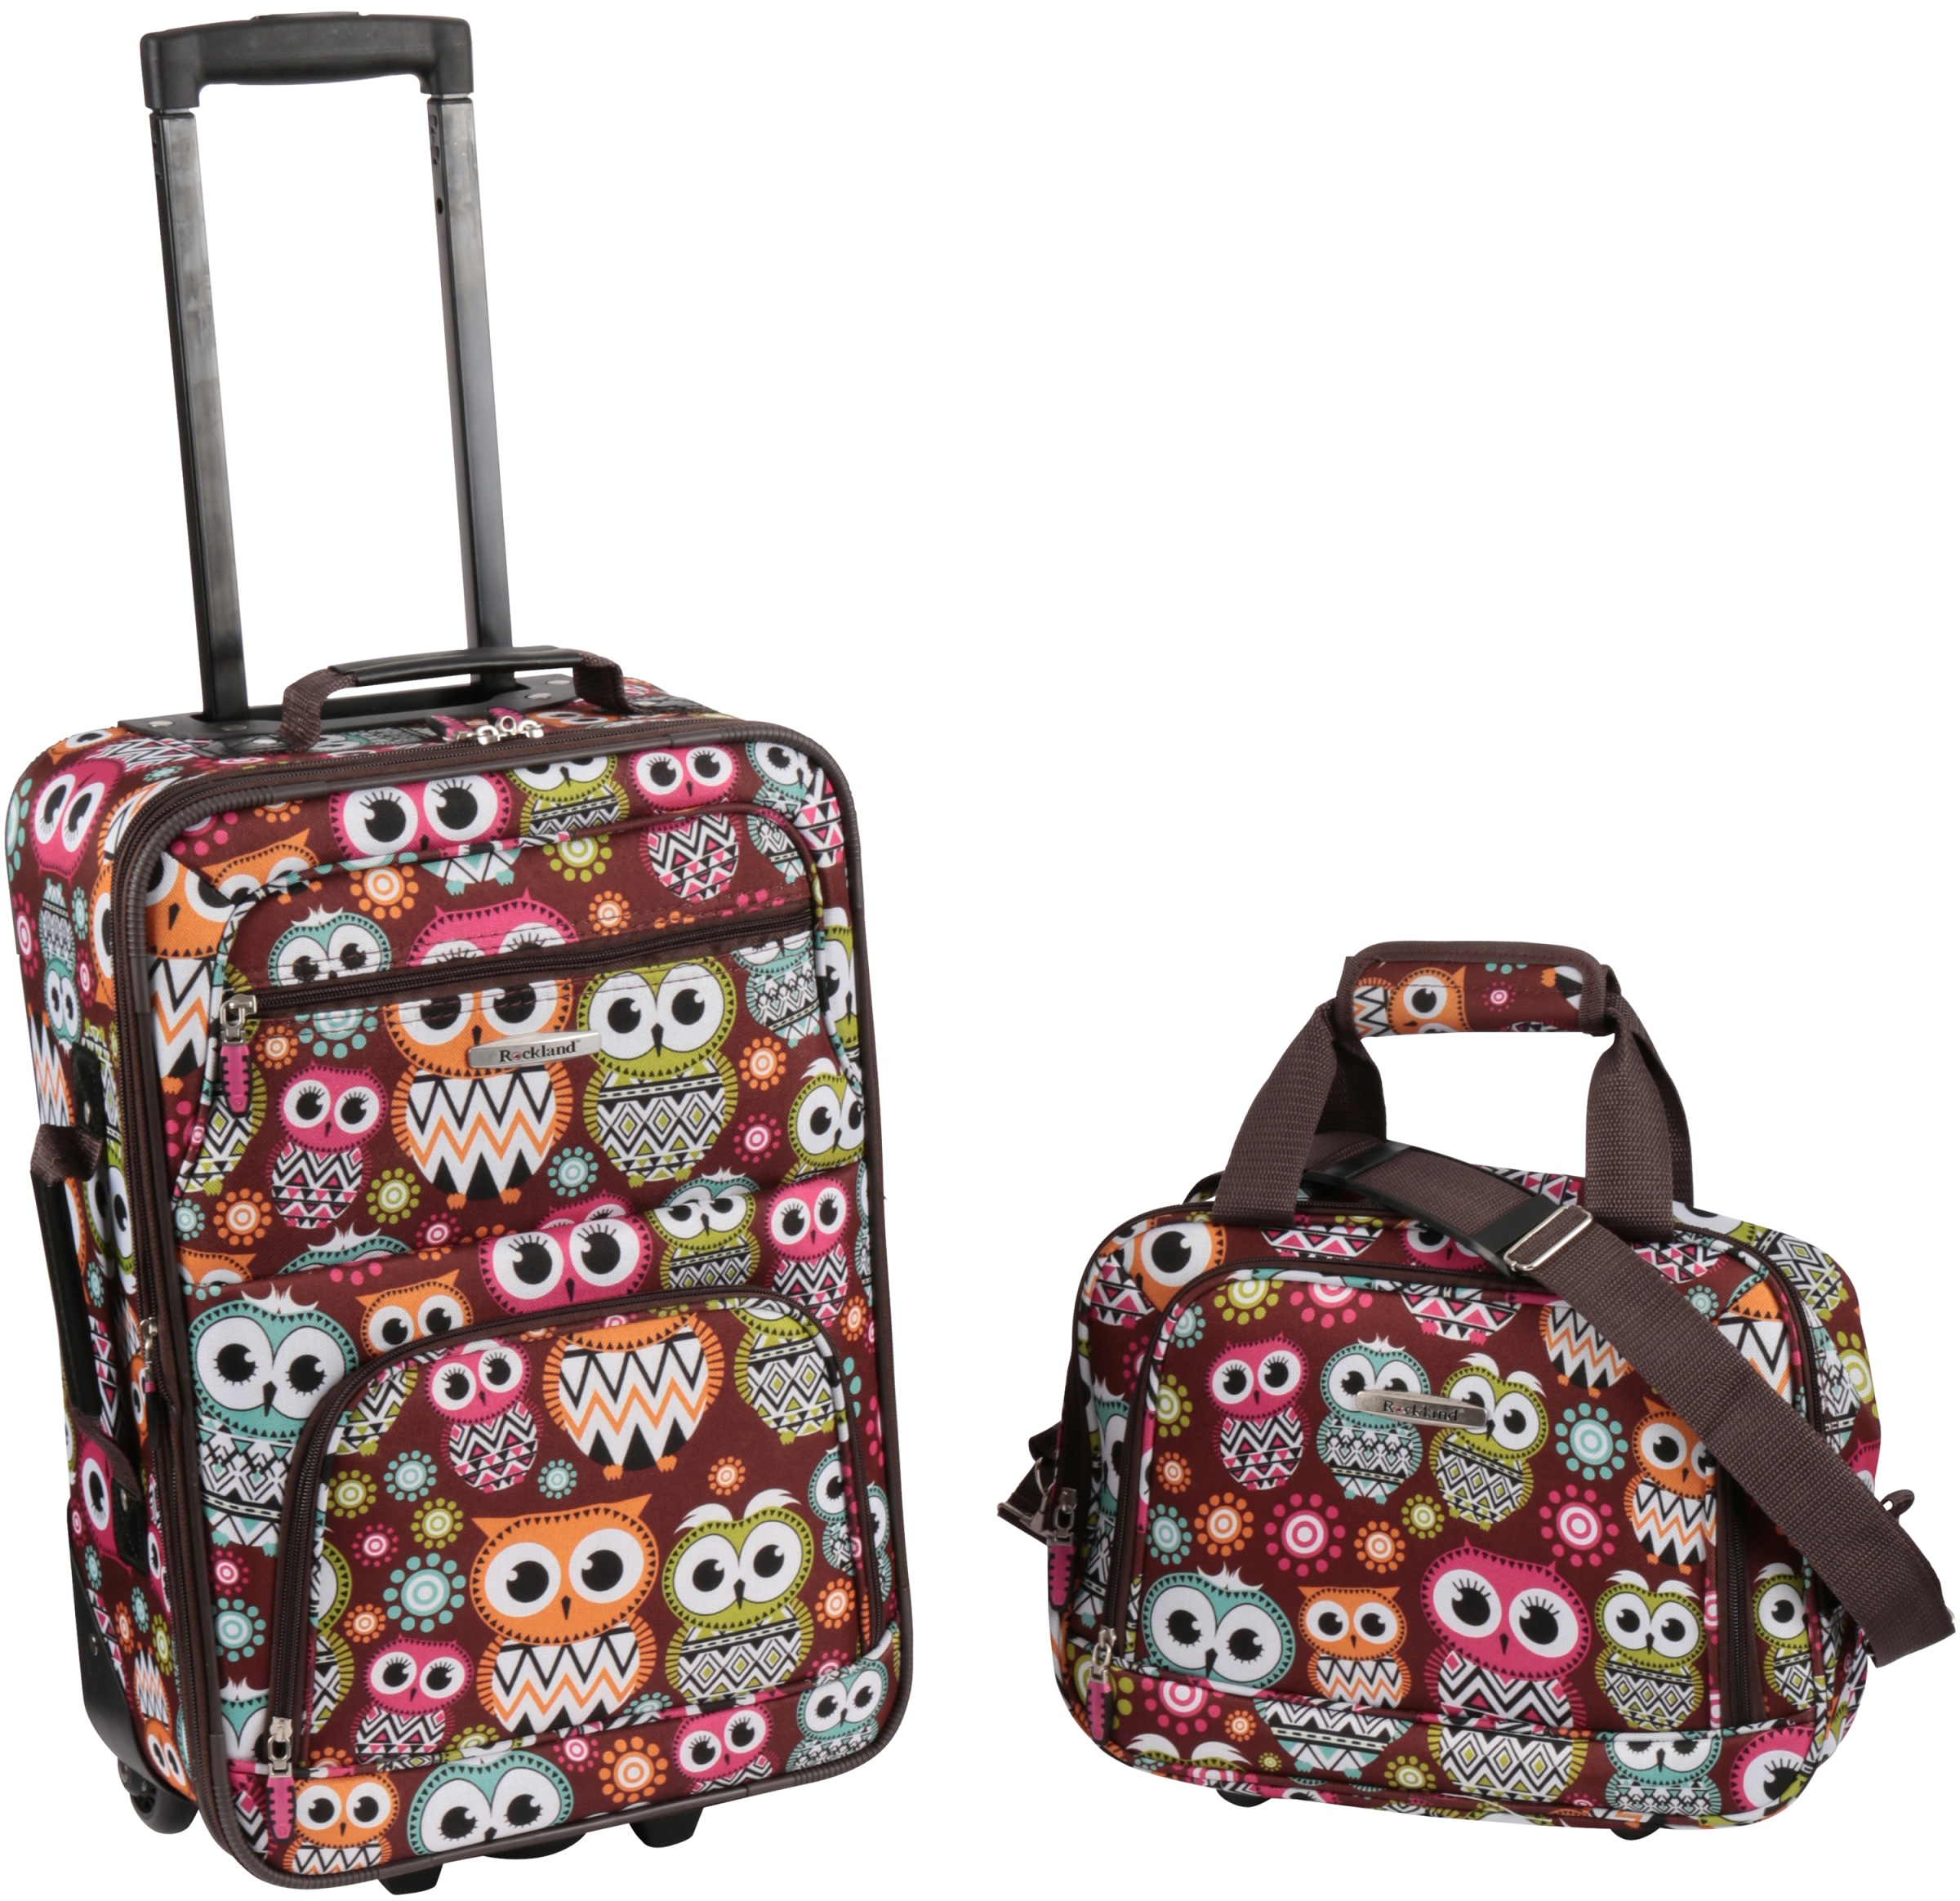 Details About Owl Suitcase For S Cute Luggage Women Travel Bag Kids Gift Set Of 2